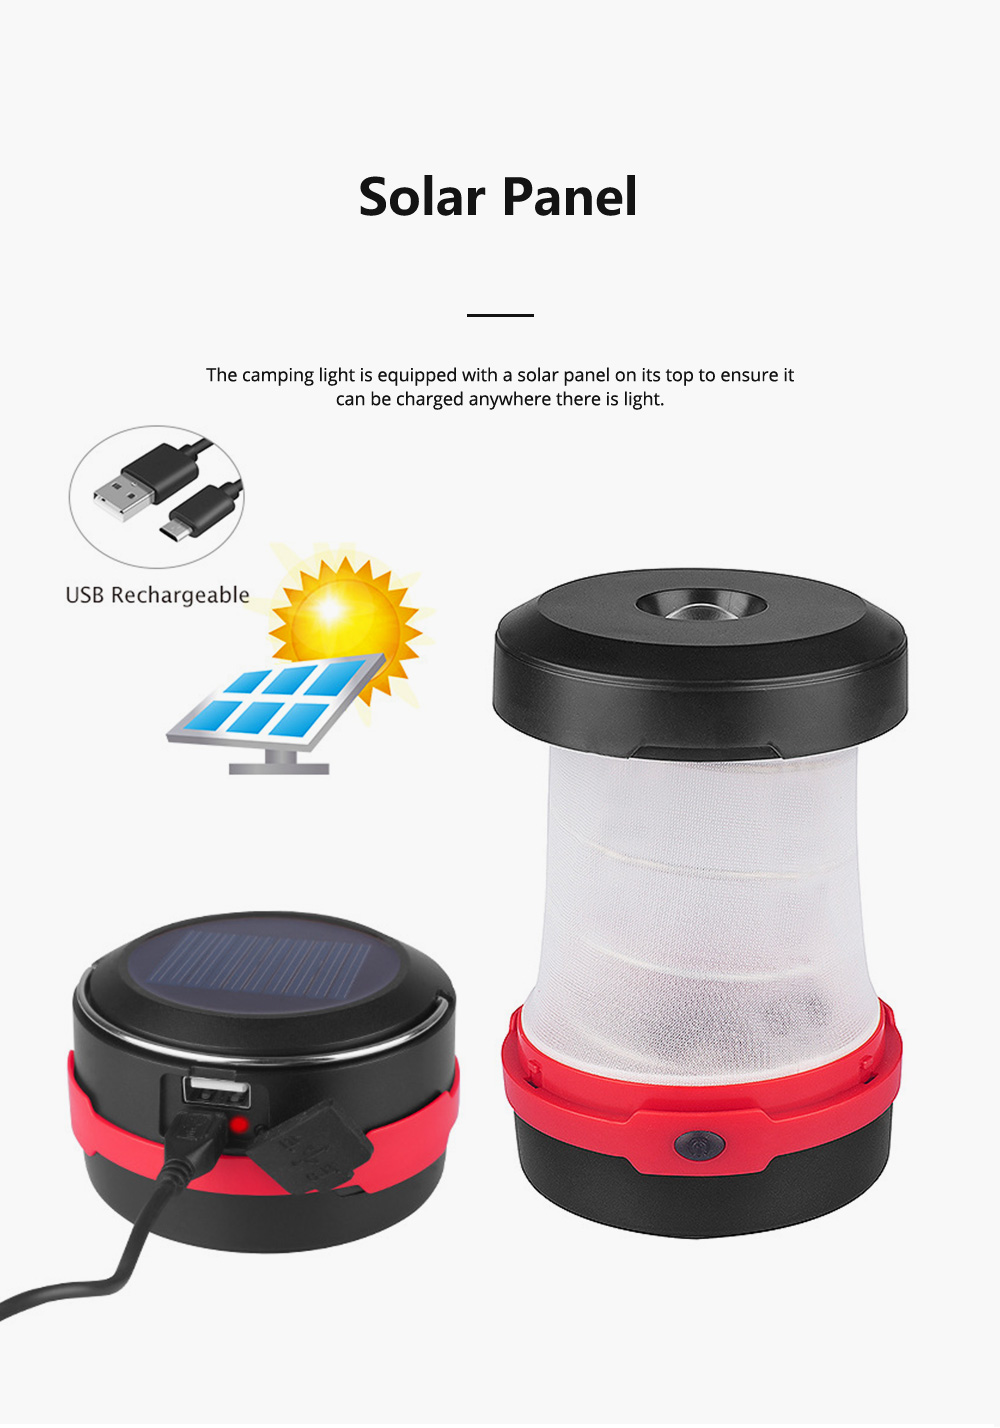 Rechargeable Pop-up LED Camping Light for Outdoor Activity Foldable Portable Telescopic LED Tent Lamp Handheld USB Chargeable Camping Lantern Ultra Bright Camping Lamp 4